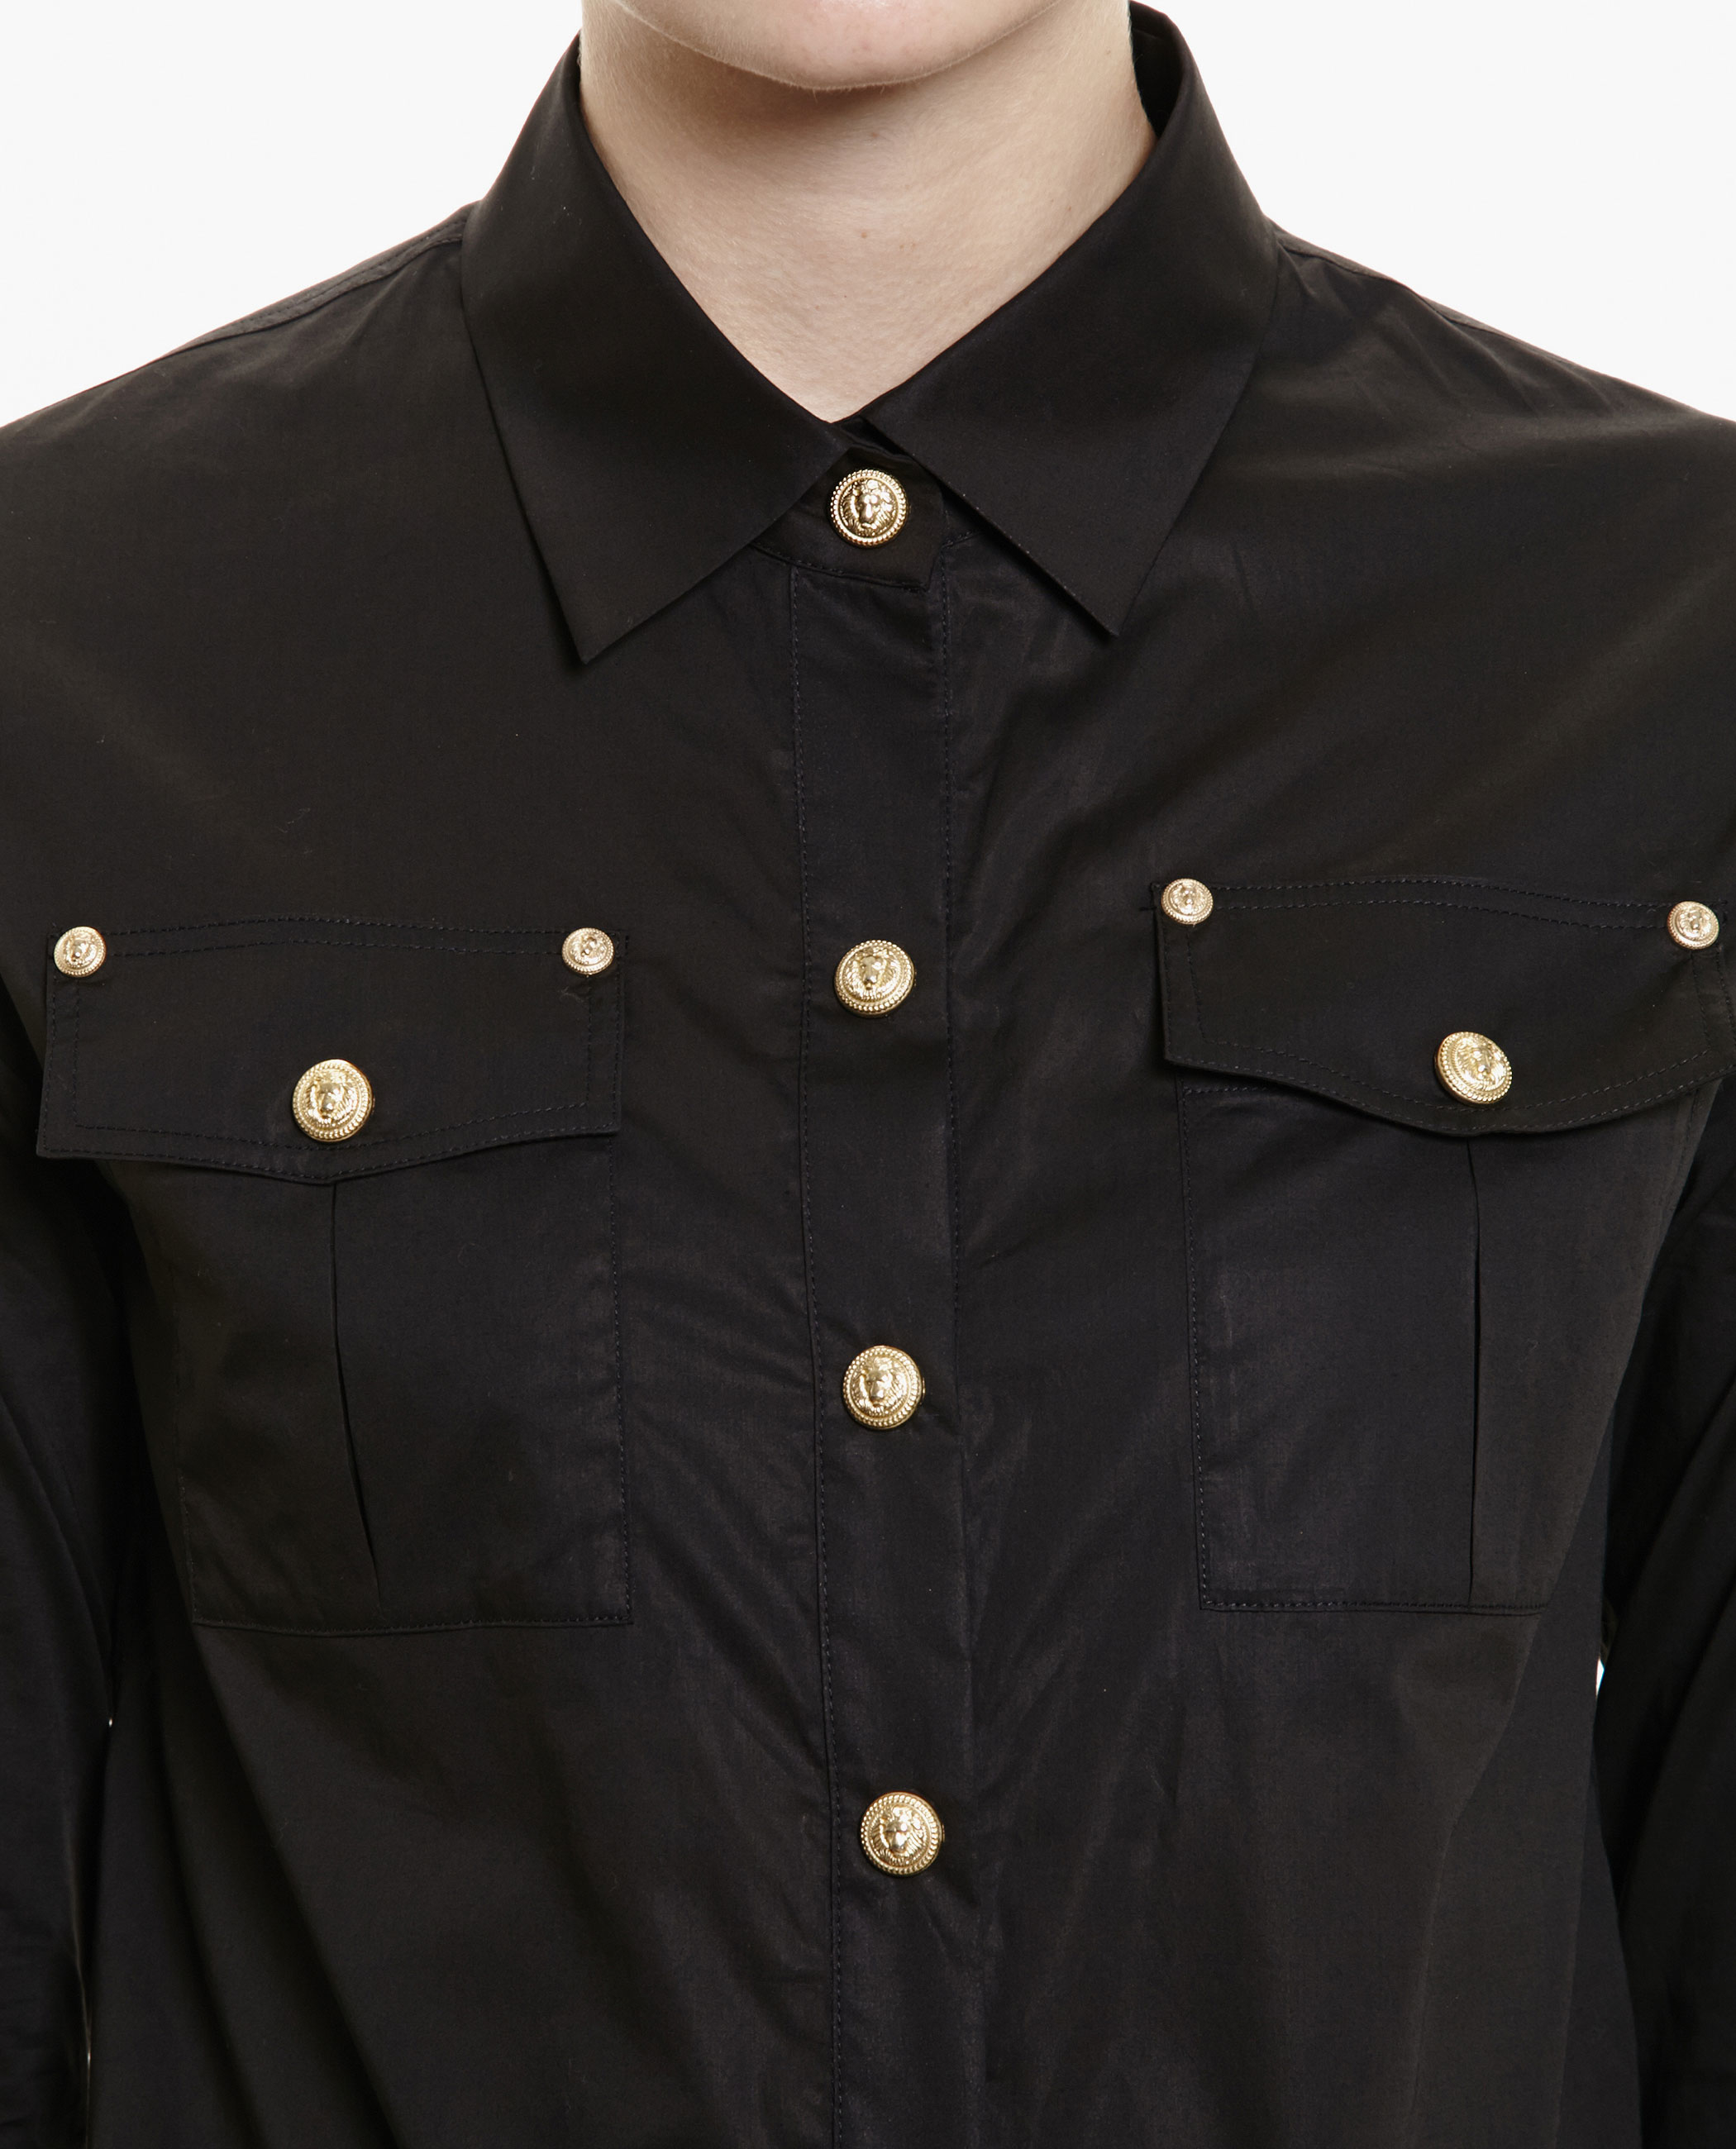 Balmain Shirt With Gold Buttons in Black | Lyst